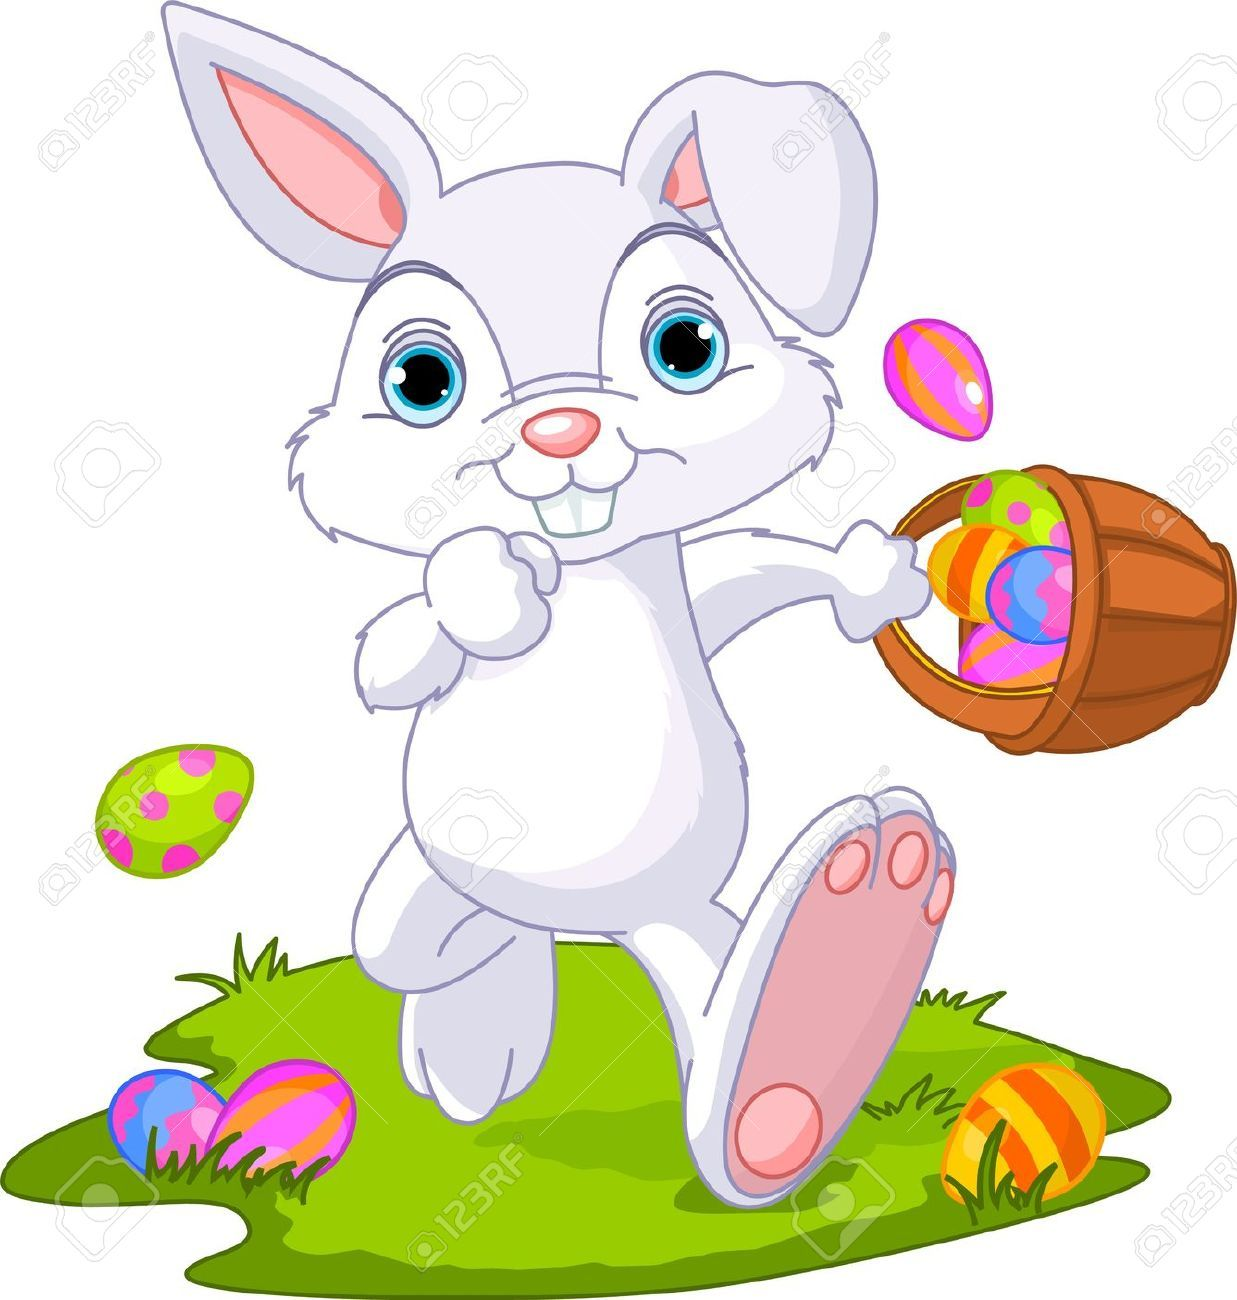 Latest Easter Bunny Clipart Free Download.